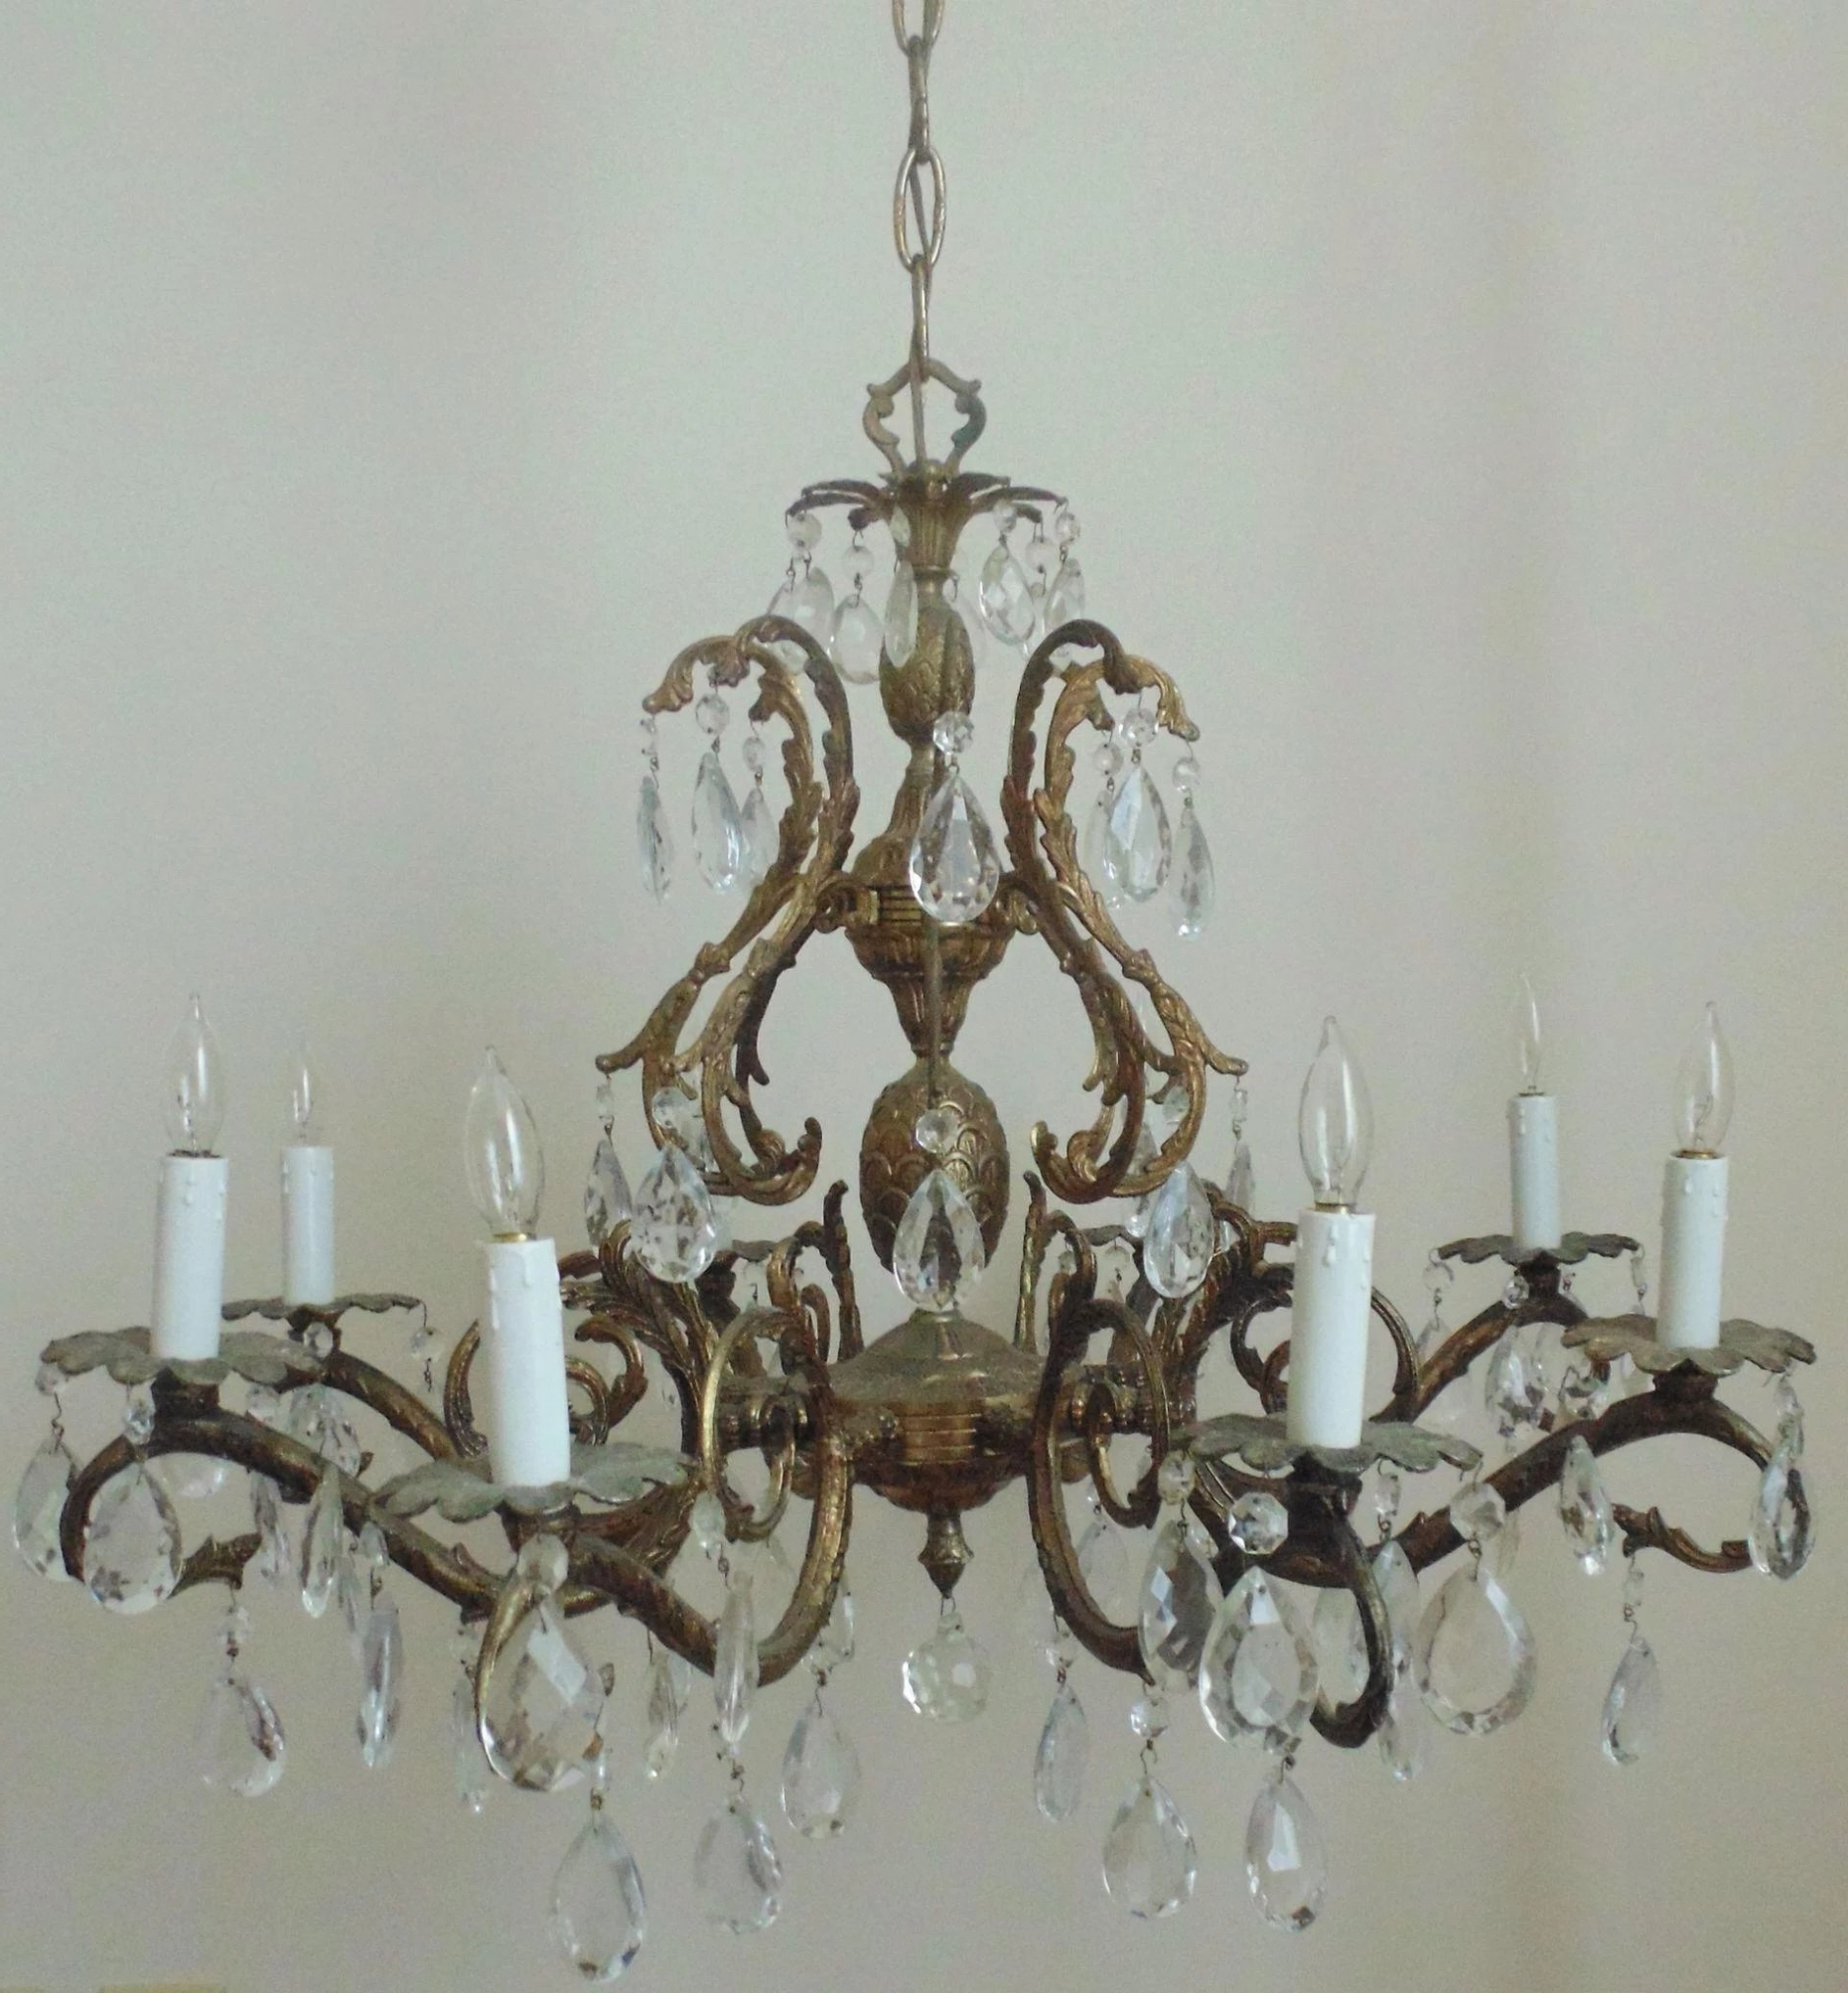 Vintage Chandelier With Regard To Best And Newest Lighting: Vintage Chandelier Bronze Finish Pineapple Birdcage Bird (Gallery 7 of 20)